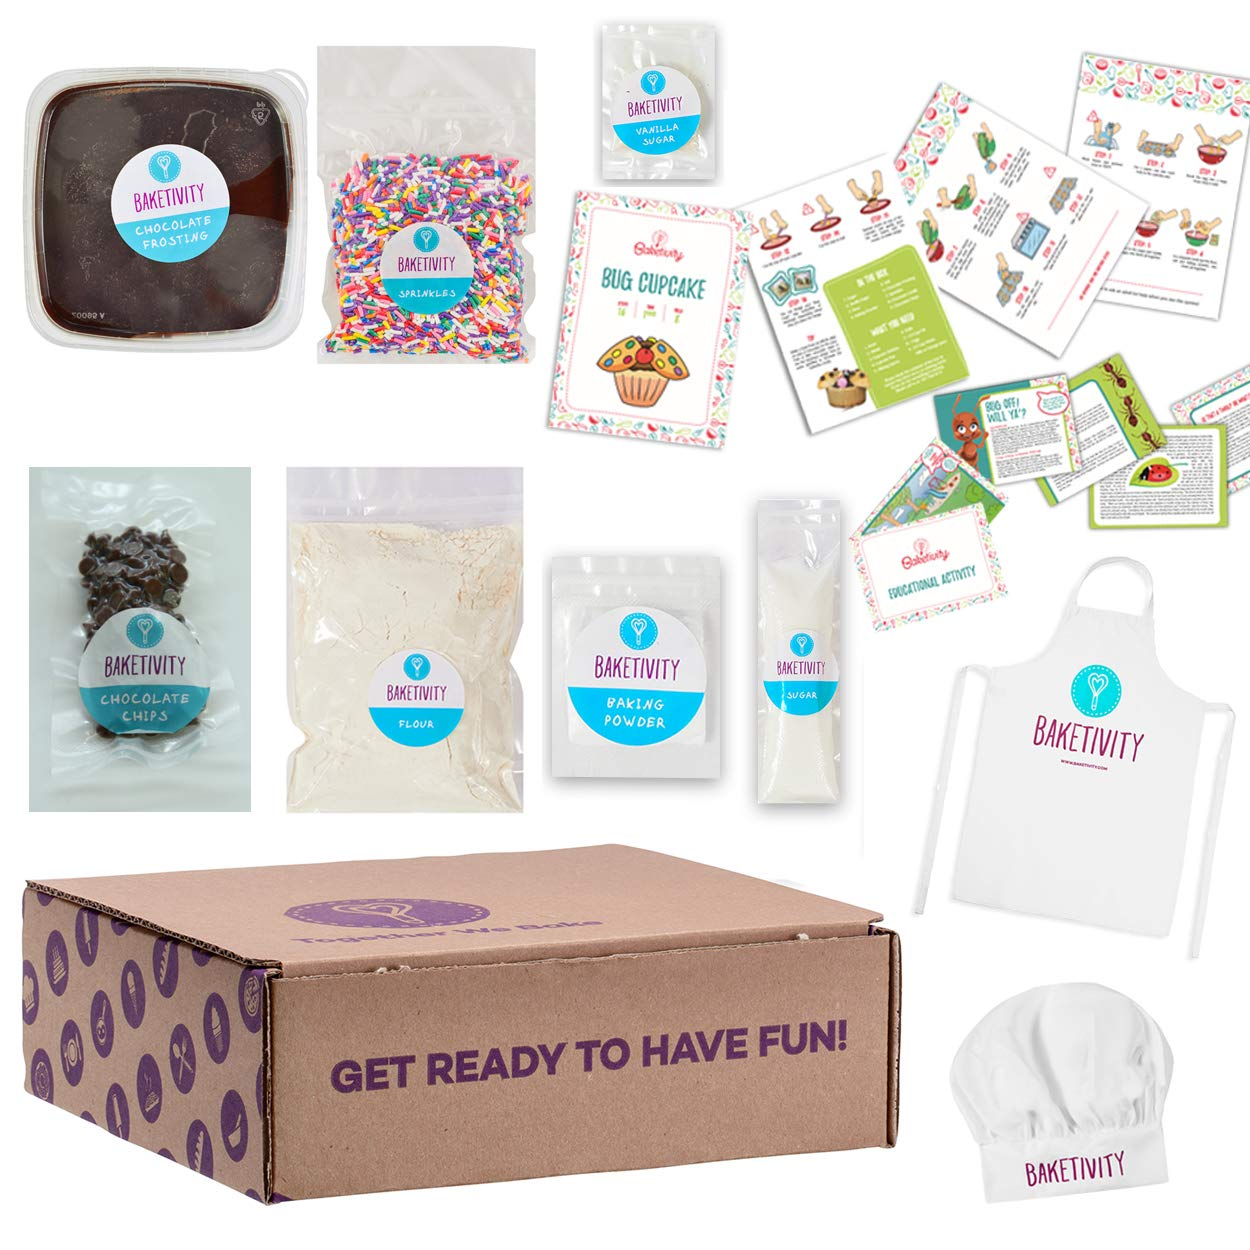 BAKETIVITY Kids Baking DIY Activity Kit - Bake Delicious Bug Cupcakes With Pre-Measured Ingredients - Best Gift Idea For Boys And Girls Ages 6-12 - Includes FREE Hat and Apron